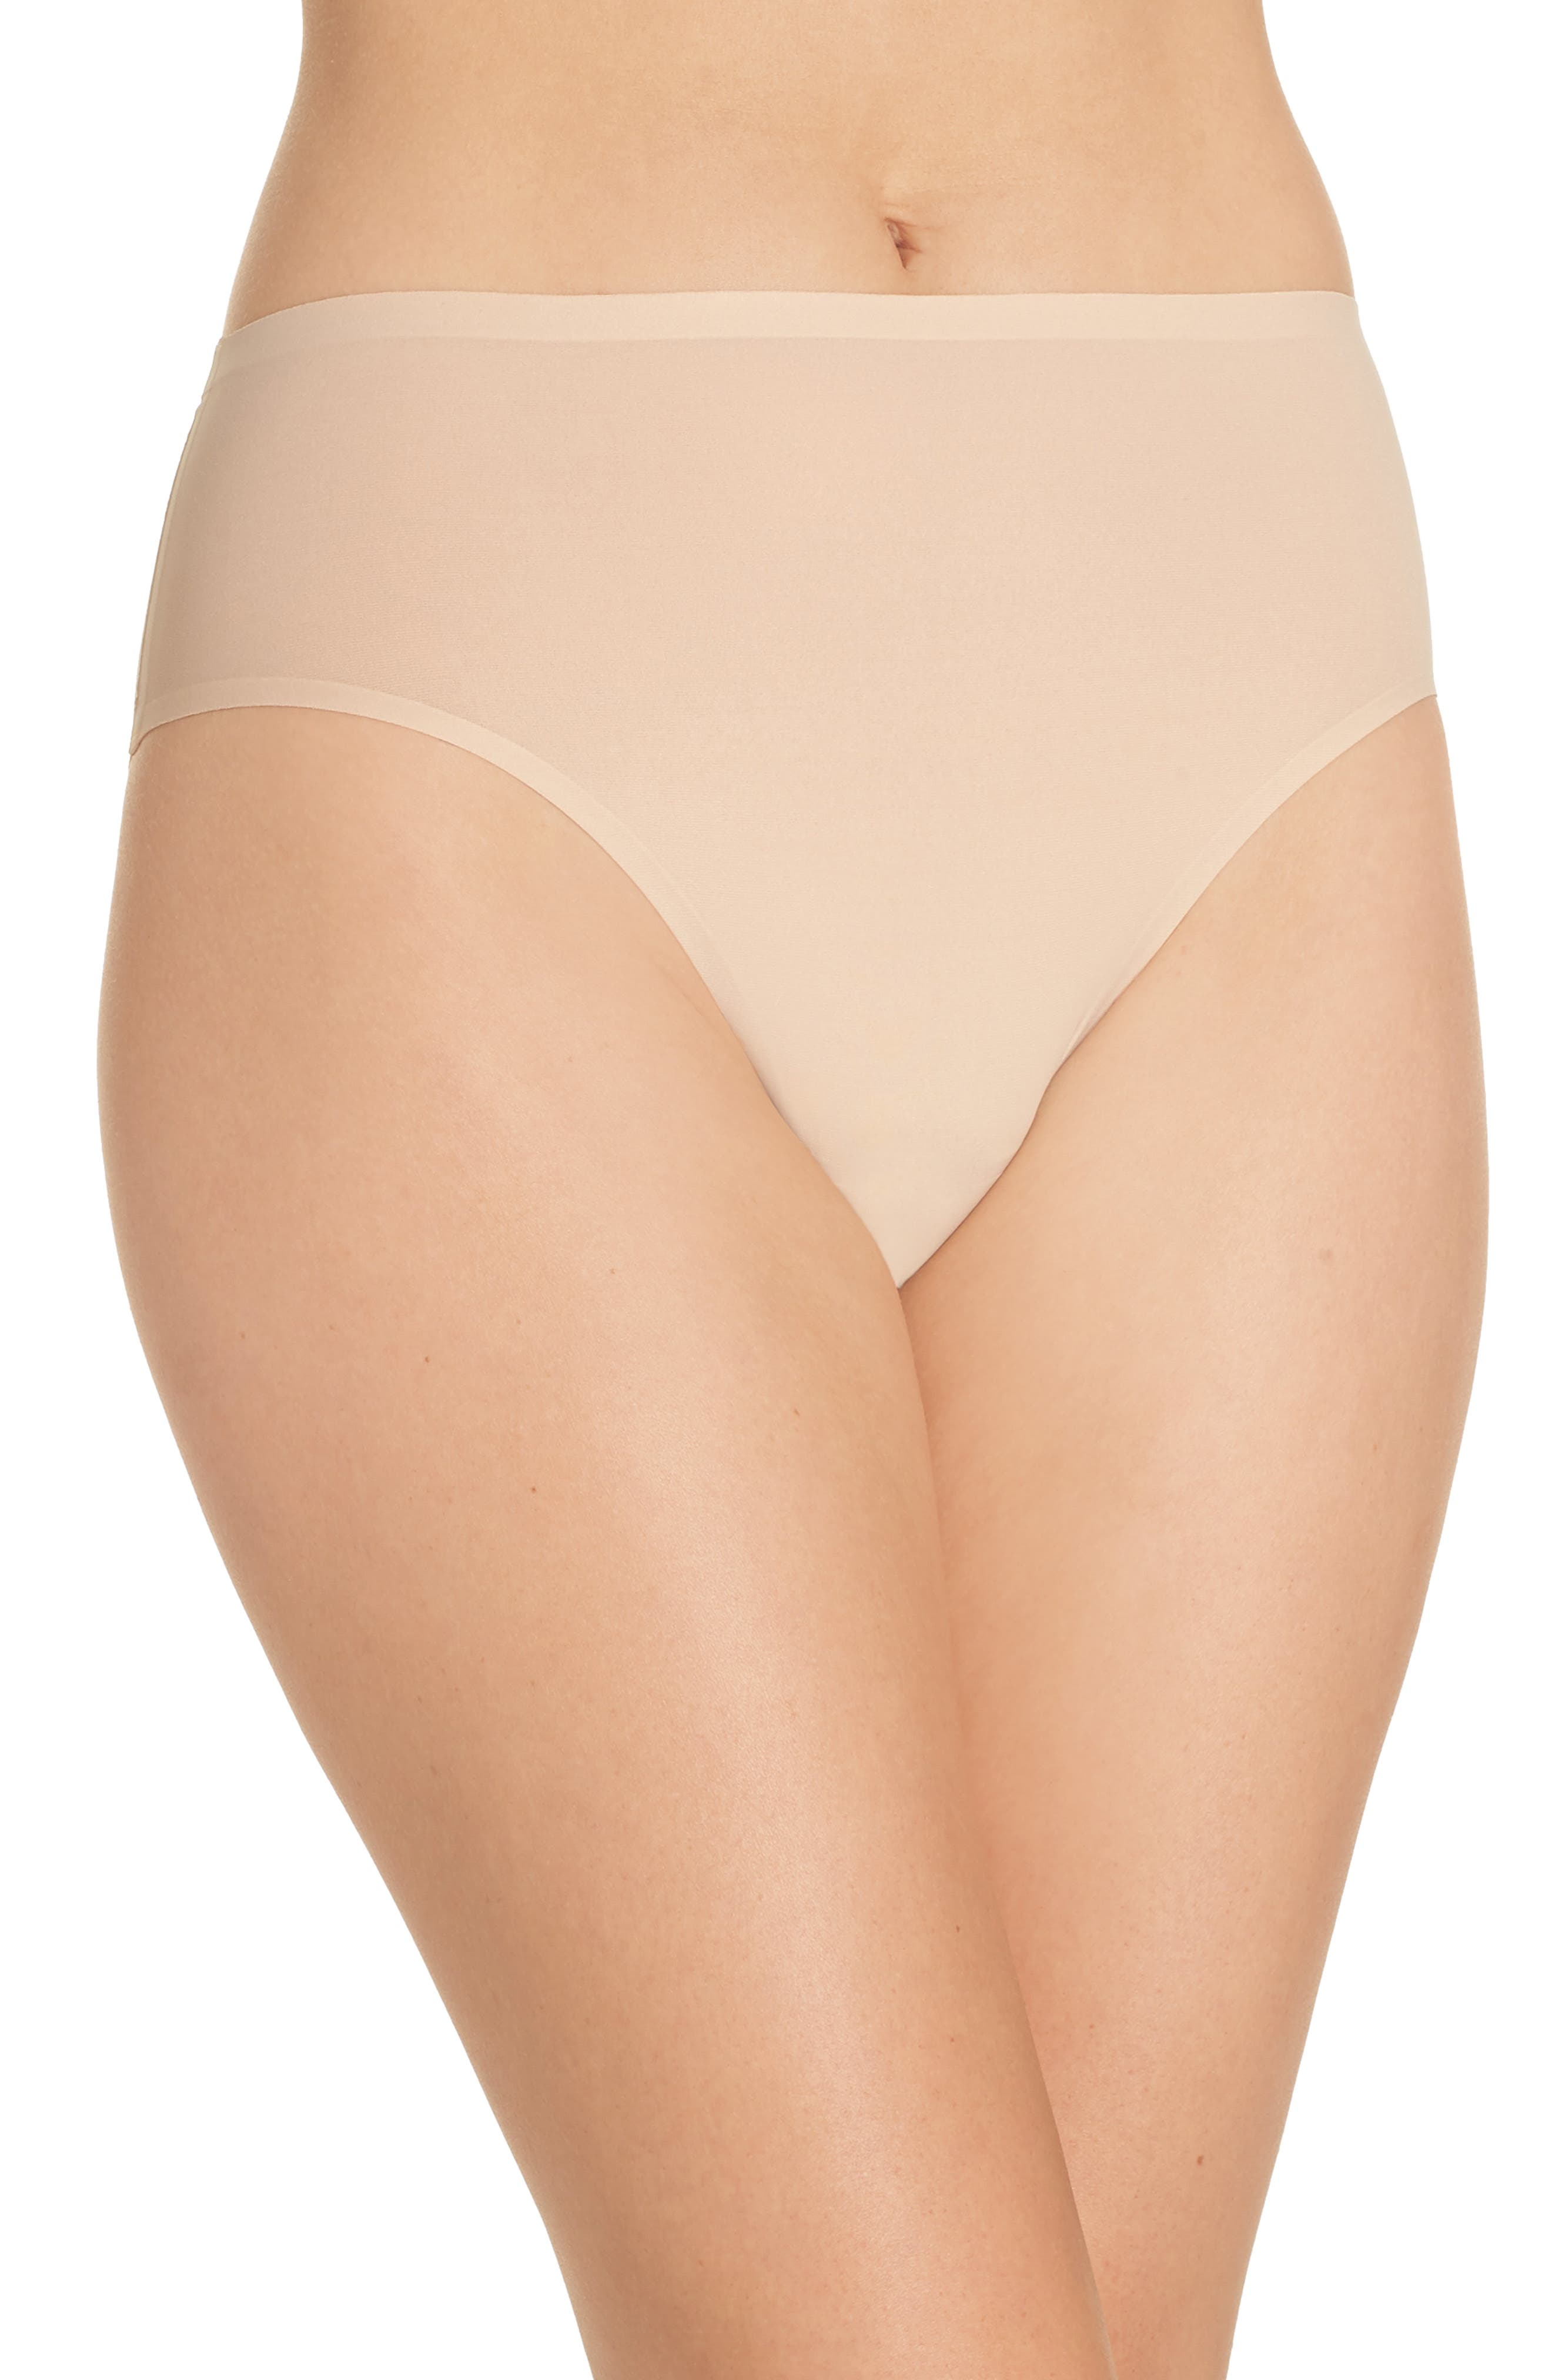 Get a line-free look without sacrificing comfort in these supersoft, high-cut briefs made from stretchy fabric in smooth, flat-seamed construction. Style Name: Chantelle Lingerie Soft Stretch Seamless French Cut Briefs (Buy More & Save). Style Number: 5732513. Available in stores.